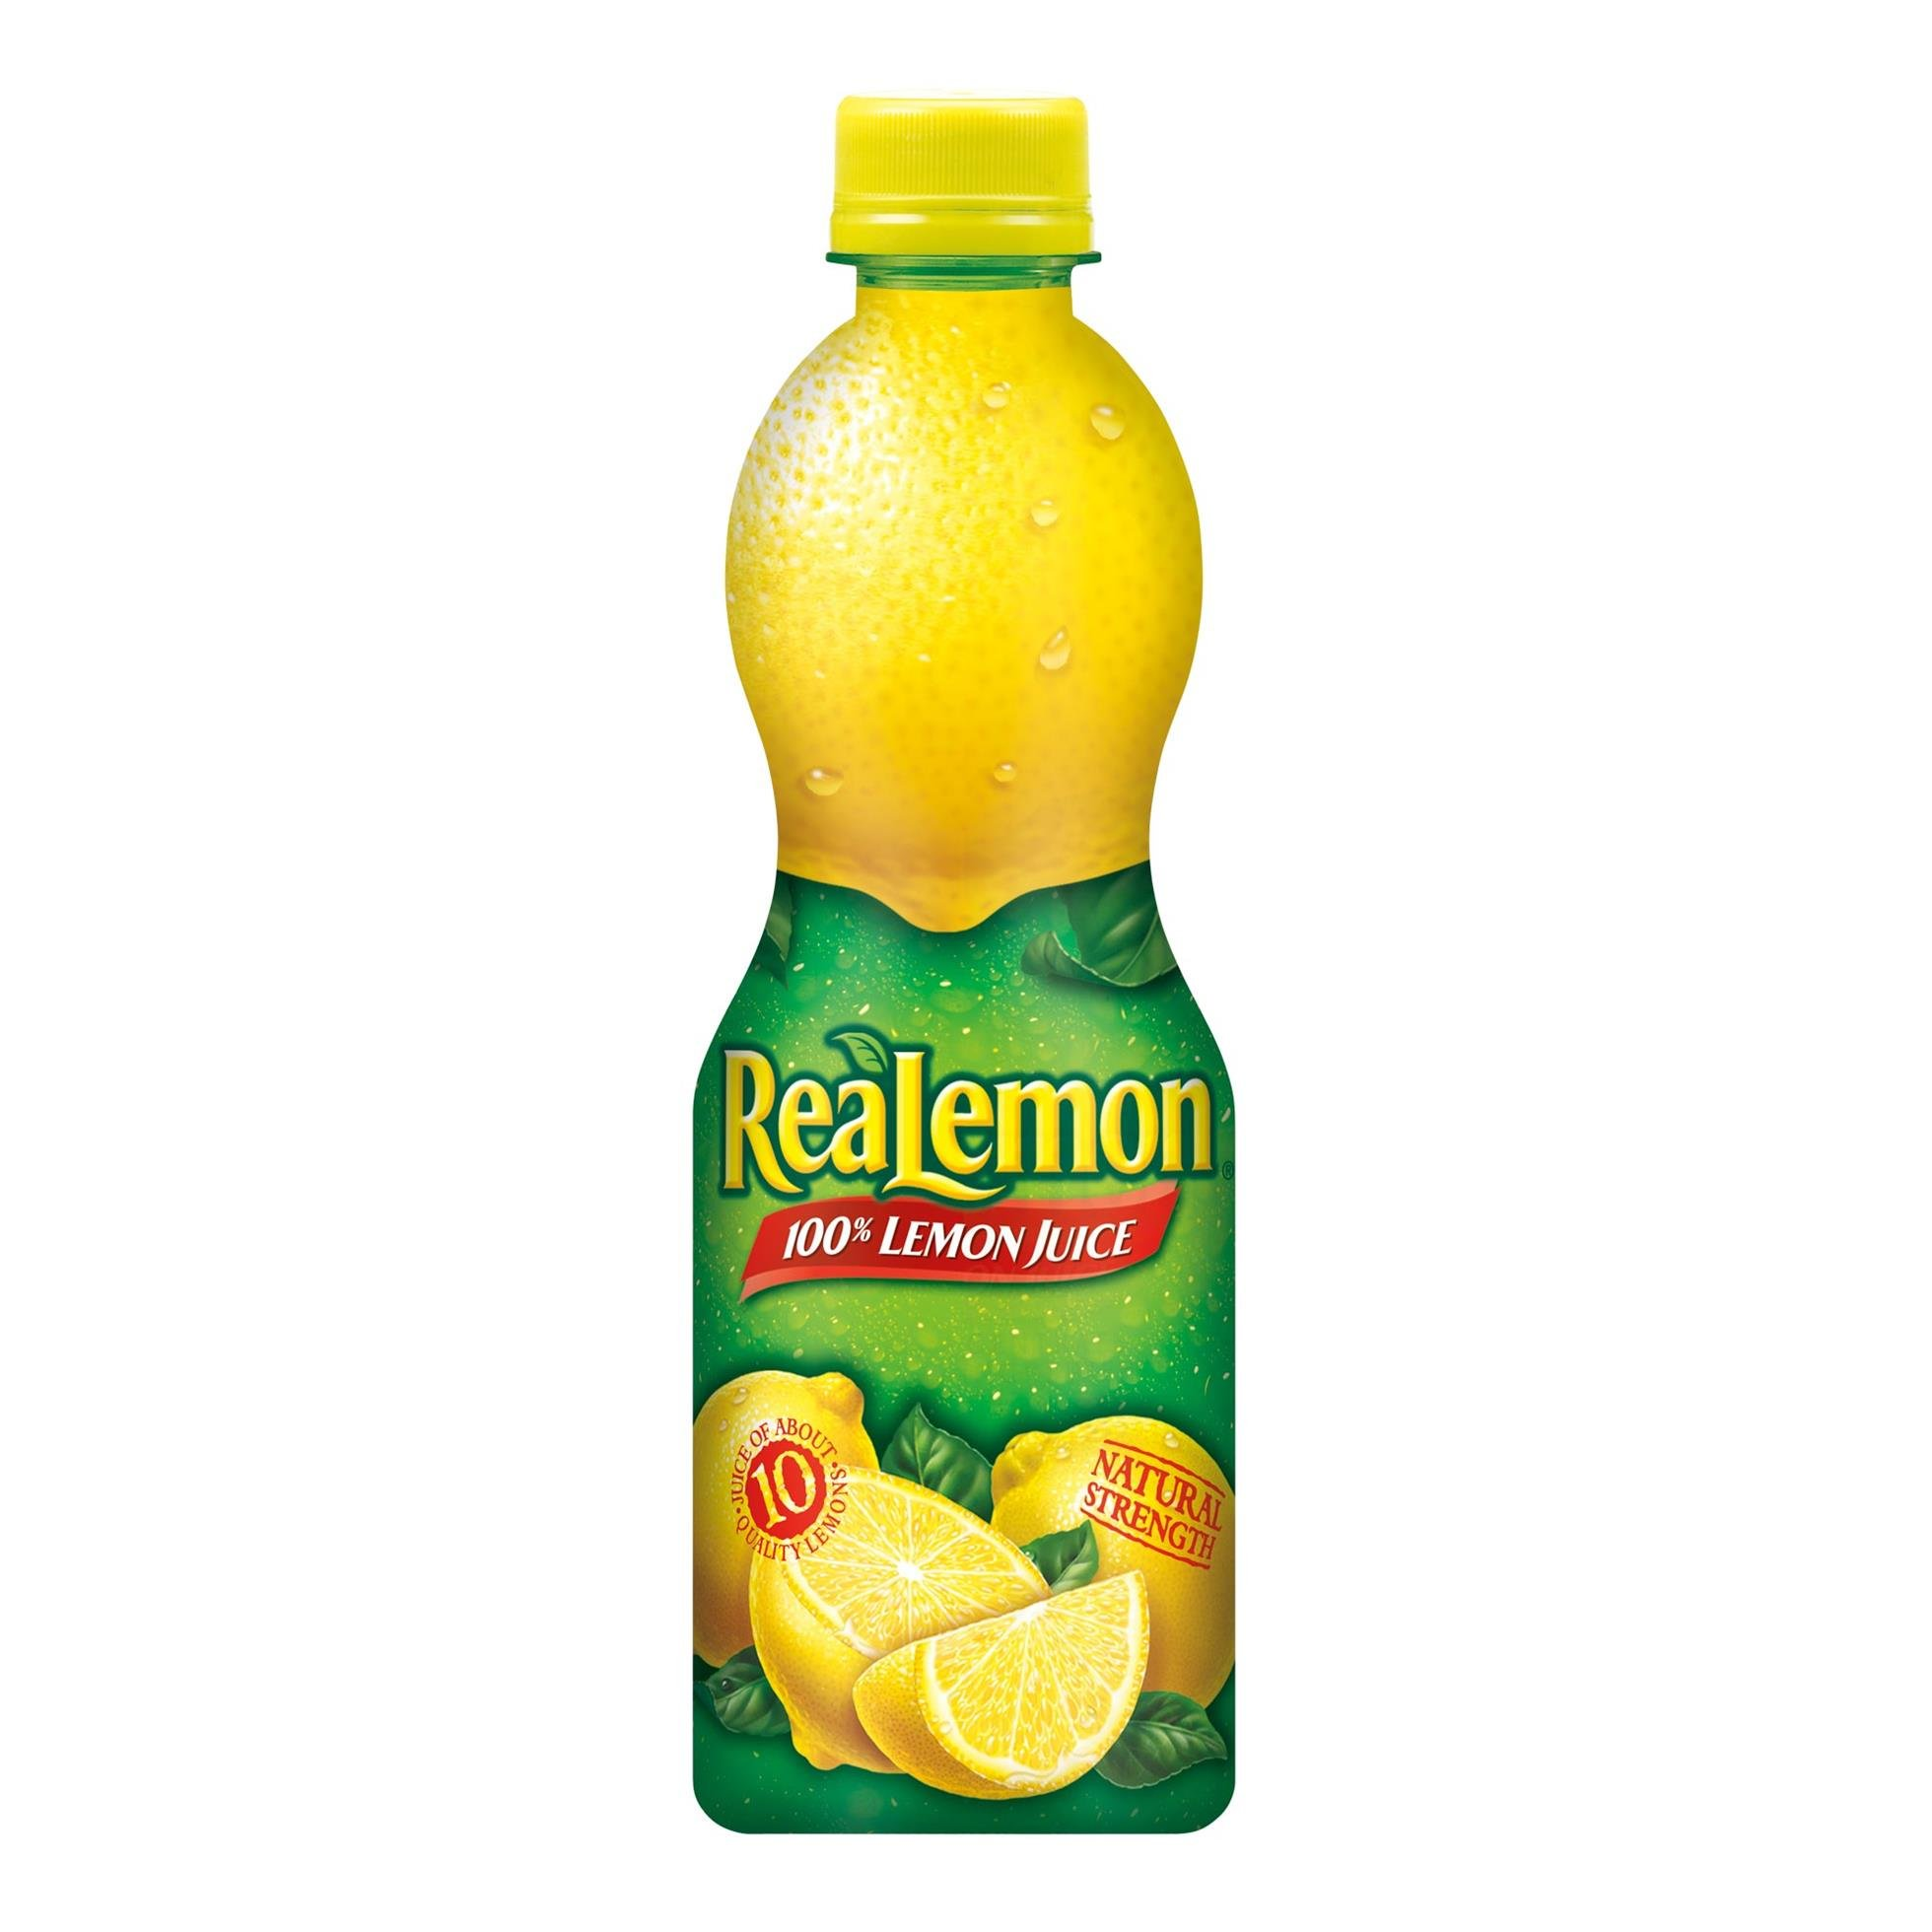 ReaLemon 100% Lemon Juice, 15 fl oz bottles (Pack of 12)